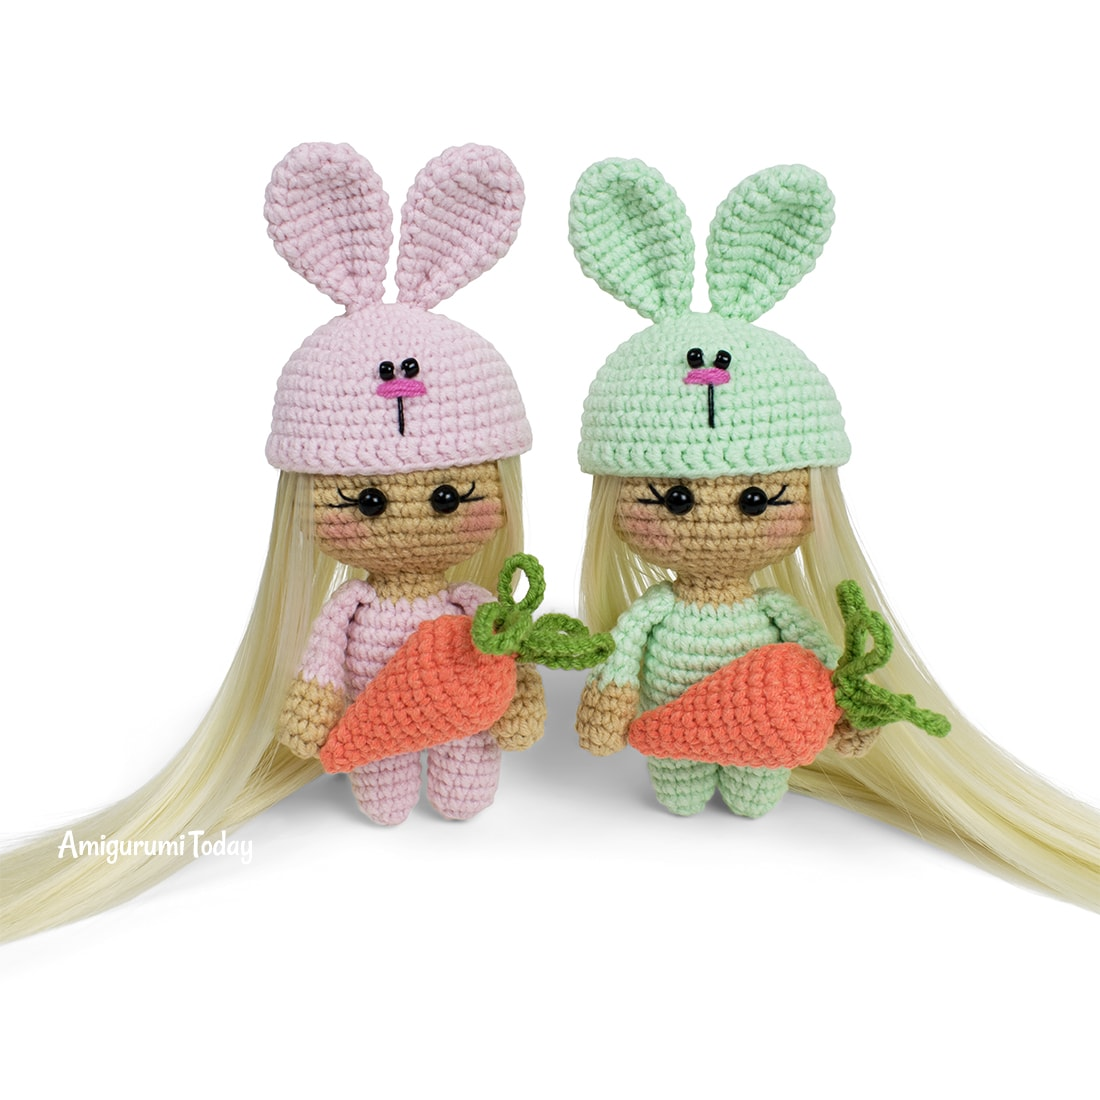 20 Free Amigurumi Patterns to Melt Your Heart | 1100x1100